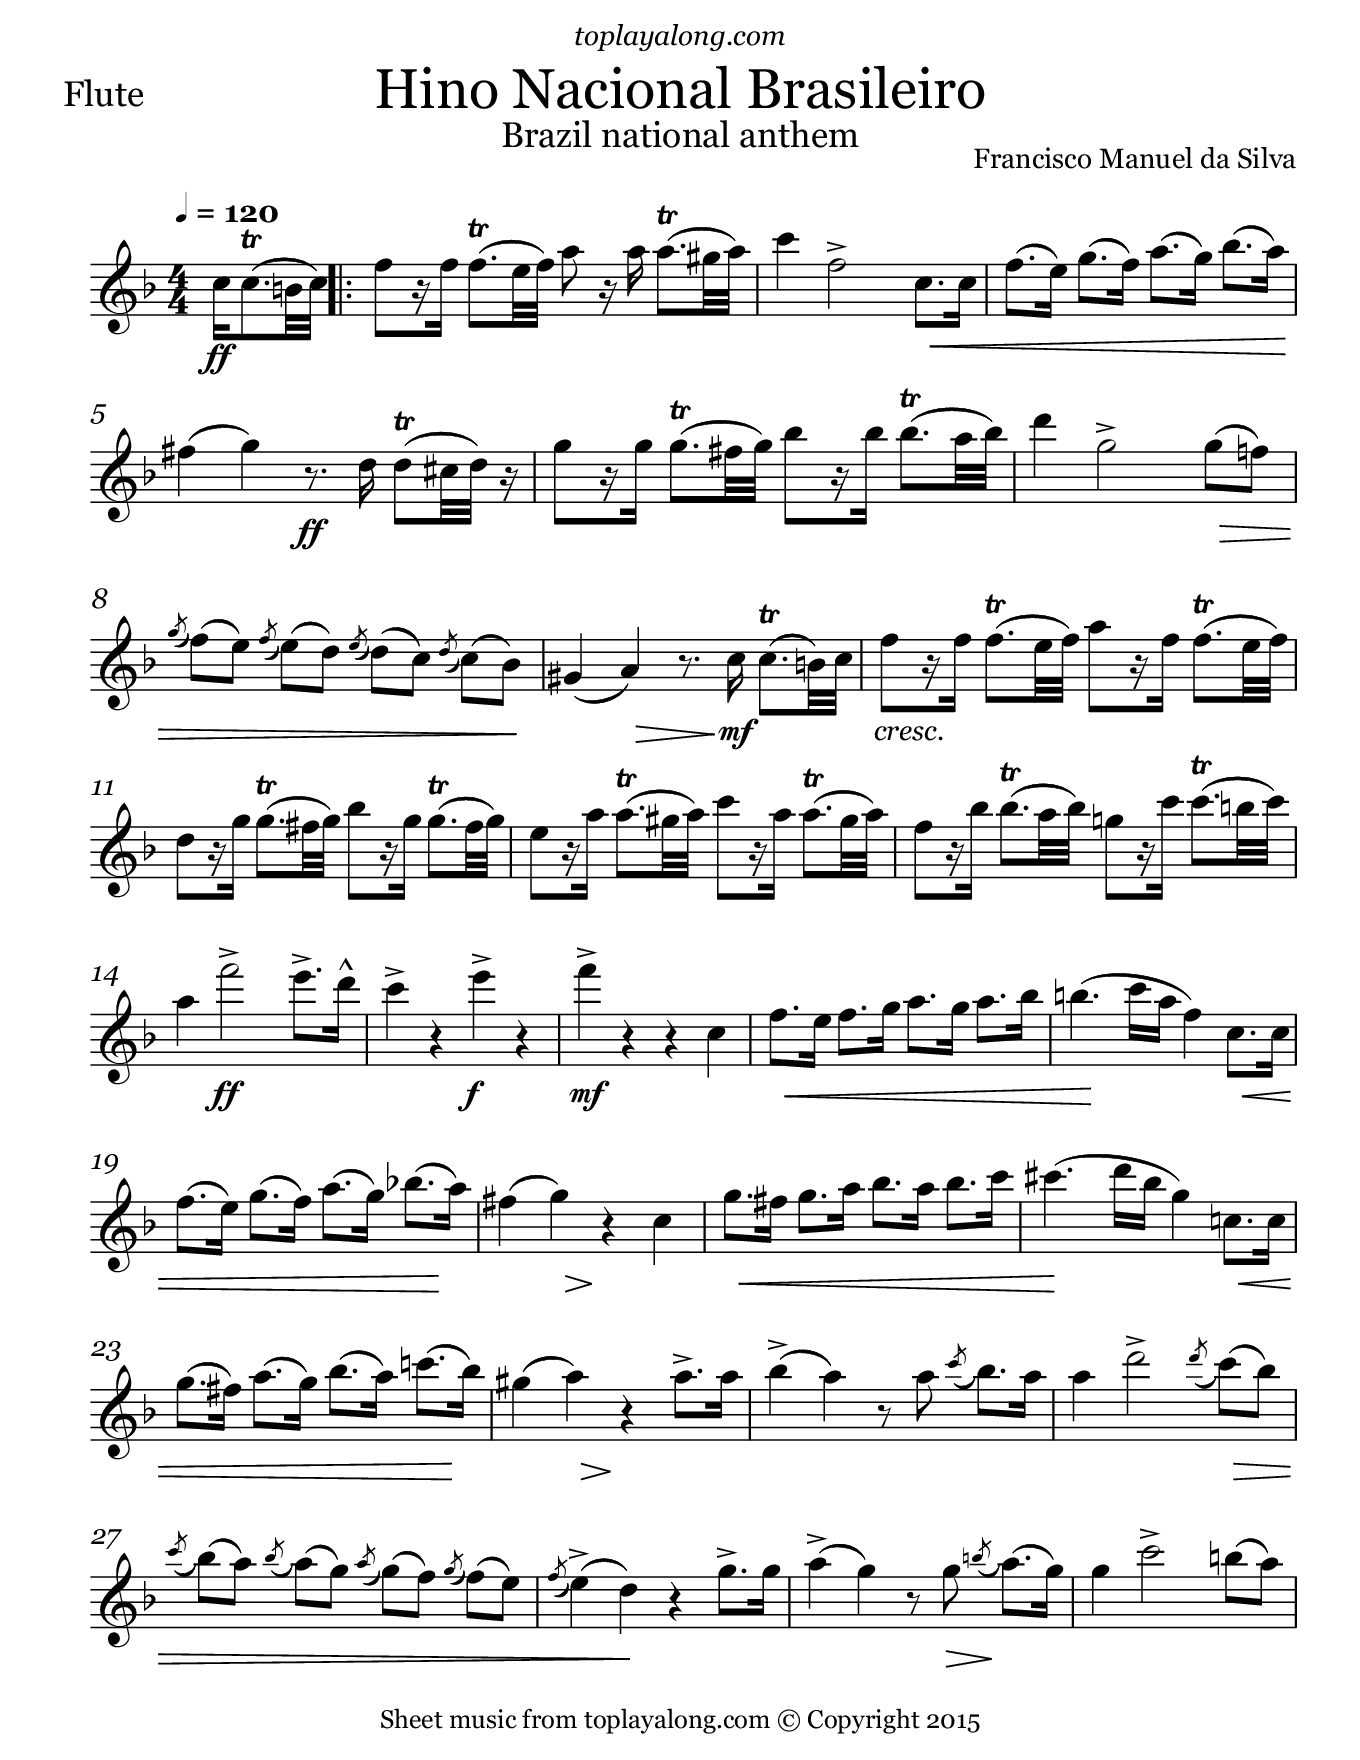 National Anthem of Brazil. Sheet music for Flute, page 1.